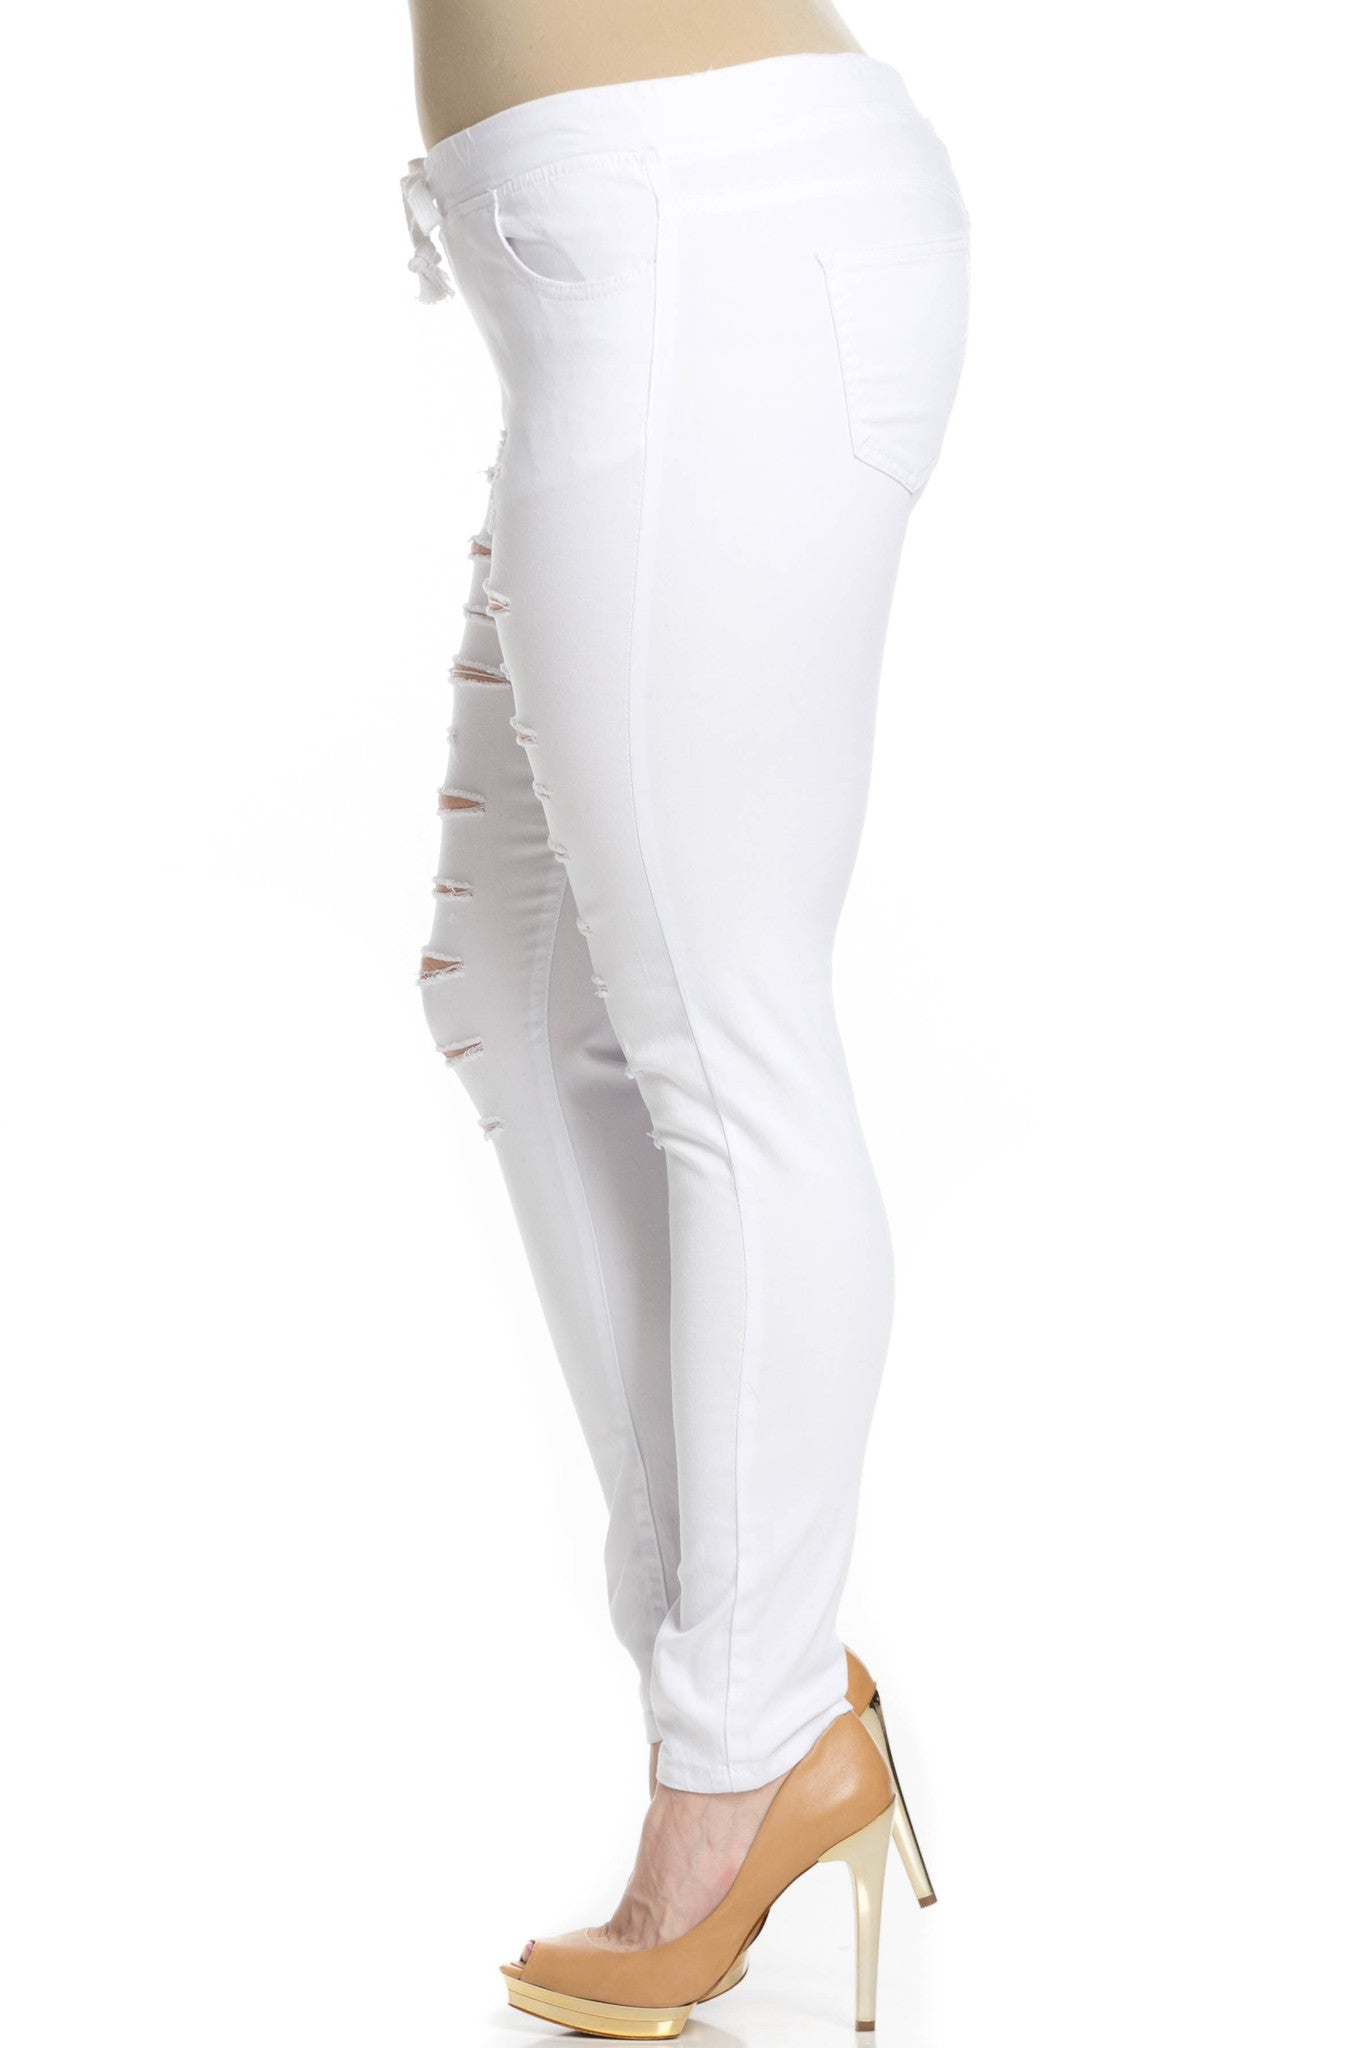 Distressed Skinny White Jogger Jeans - Pants - My Yuccie - 10